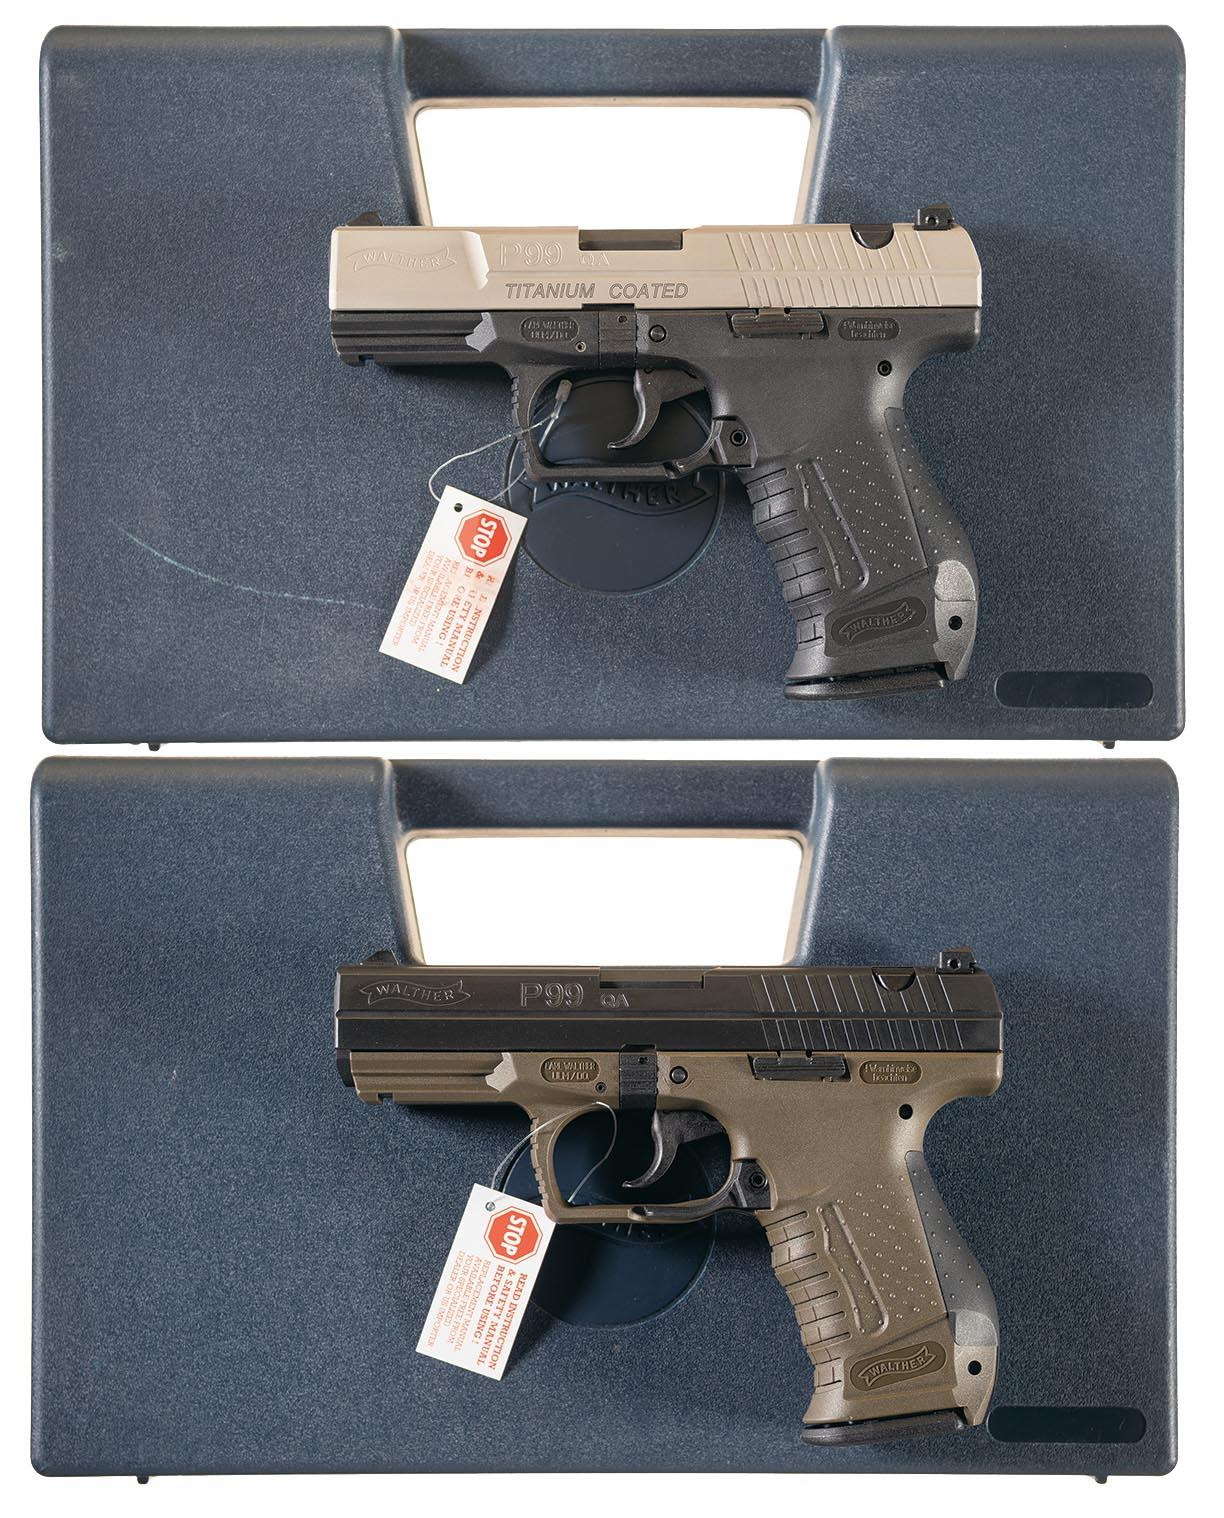 Two Walther Semi-Automatic Pistols w/ Cases